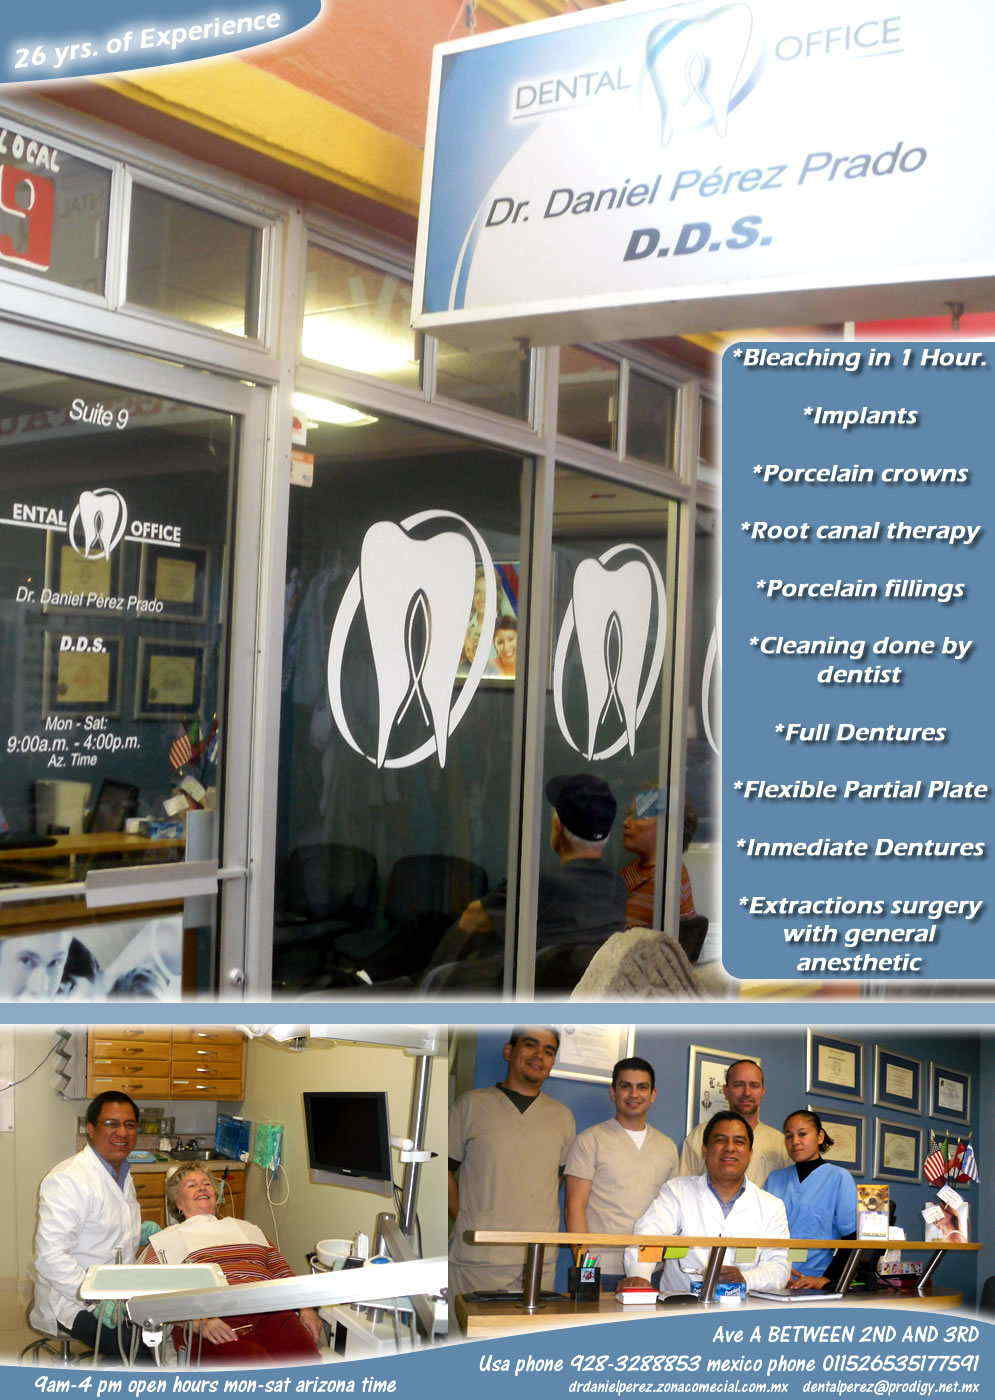 Dr. Daniel  Perez  Prado in Algodones  in Algodones  dentists dentists implants porcelain dentista perez prado daniel